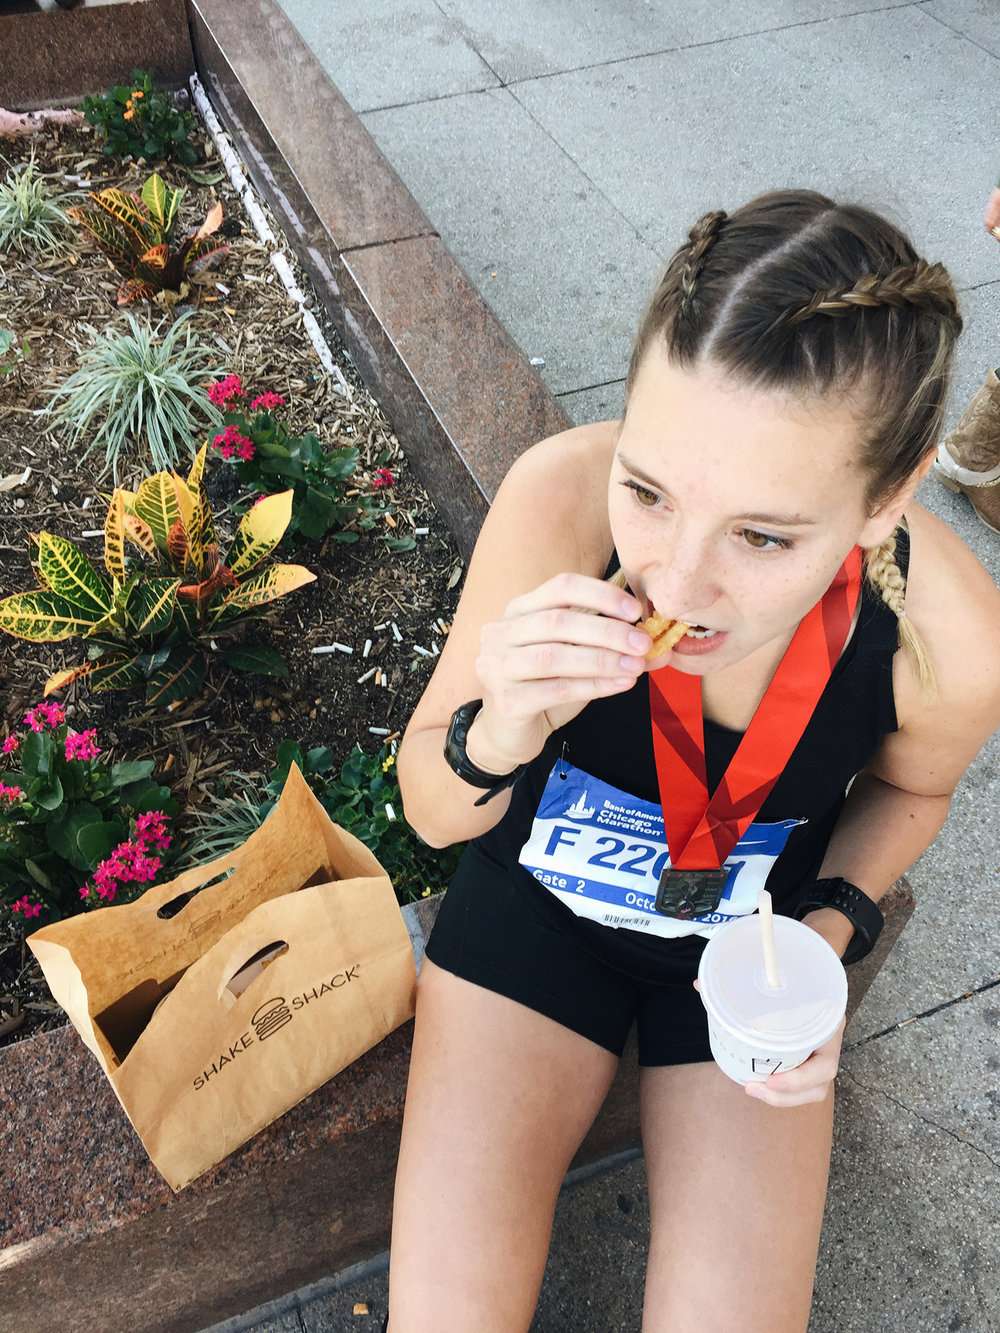 CAUGHT NOSHING ON A BASKET OF CRINKLE CUT FRIES AND A BLACK AND WHITE SHAKE FROM SHAKE SHACK POST RACE.